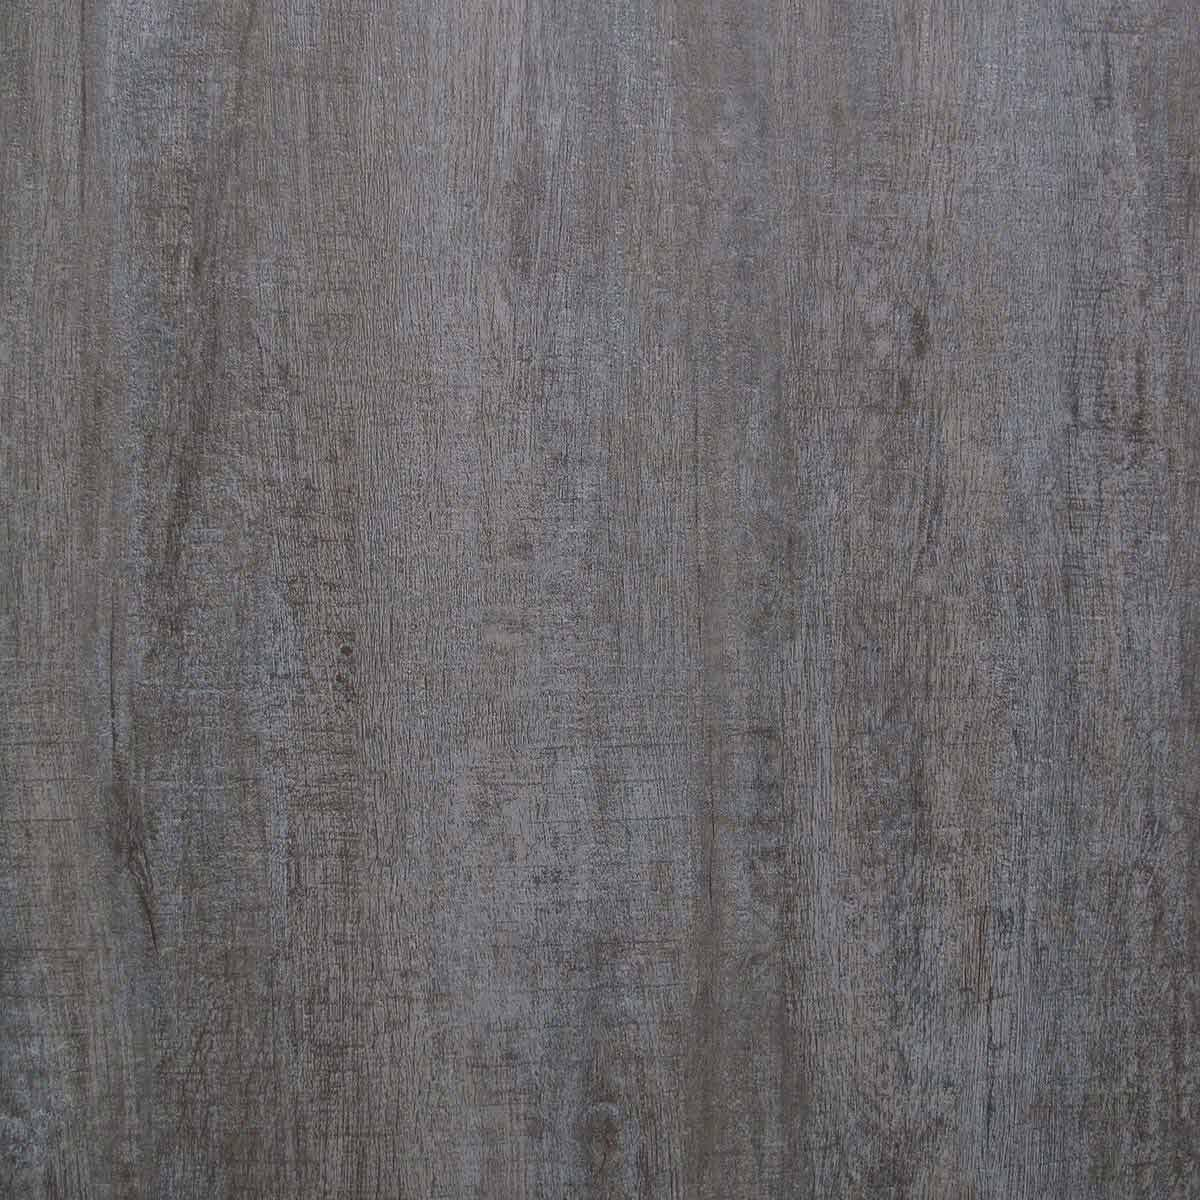 Rustic Glazed Porcelain Floor and Wall Tile - 24 ln. x 24 ln. (PM69039-1)